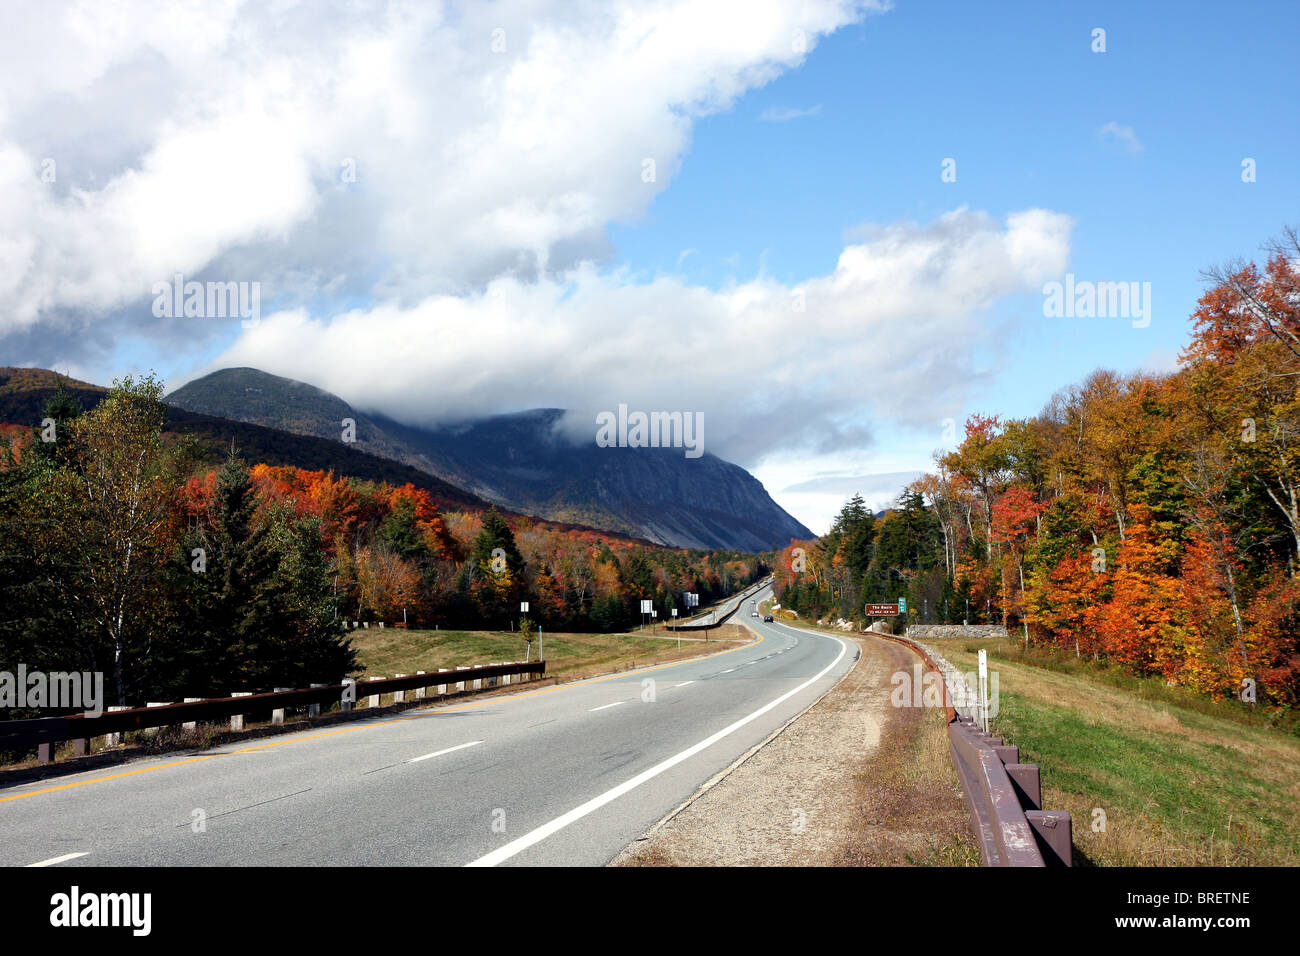 A mountain and the trees at fall time - Stock Image